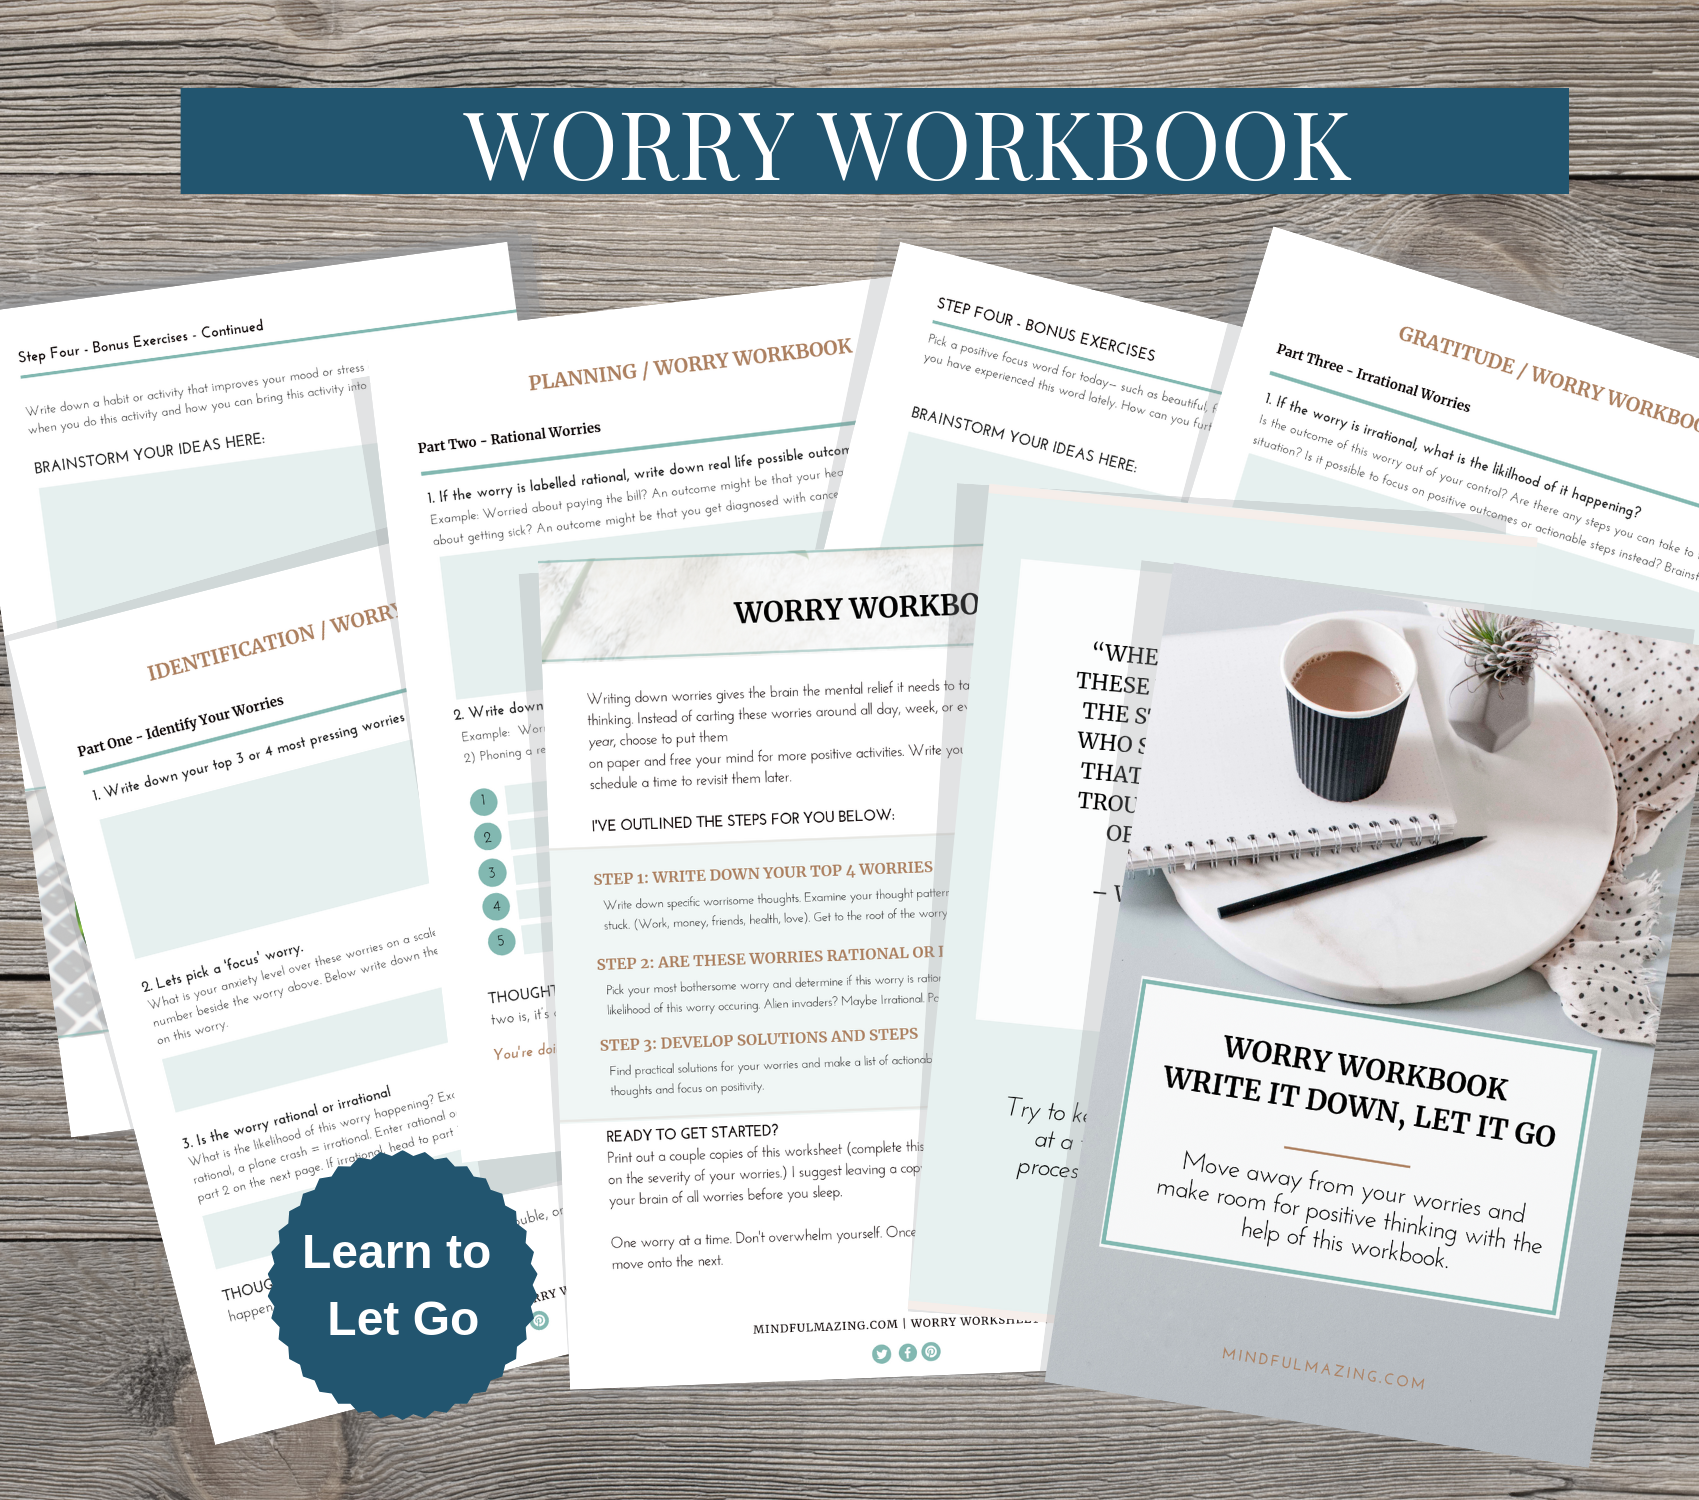 Worry Workbook In